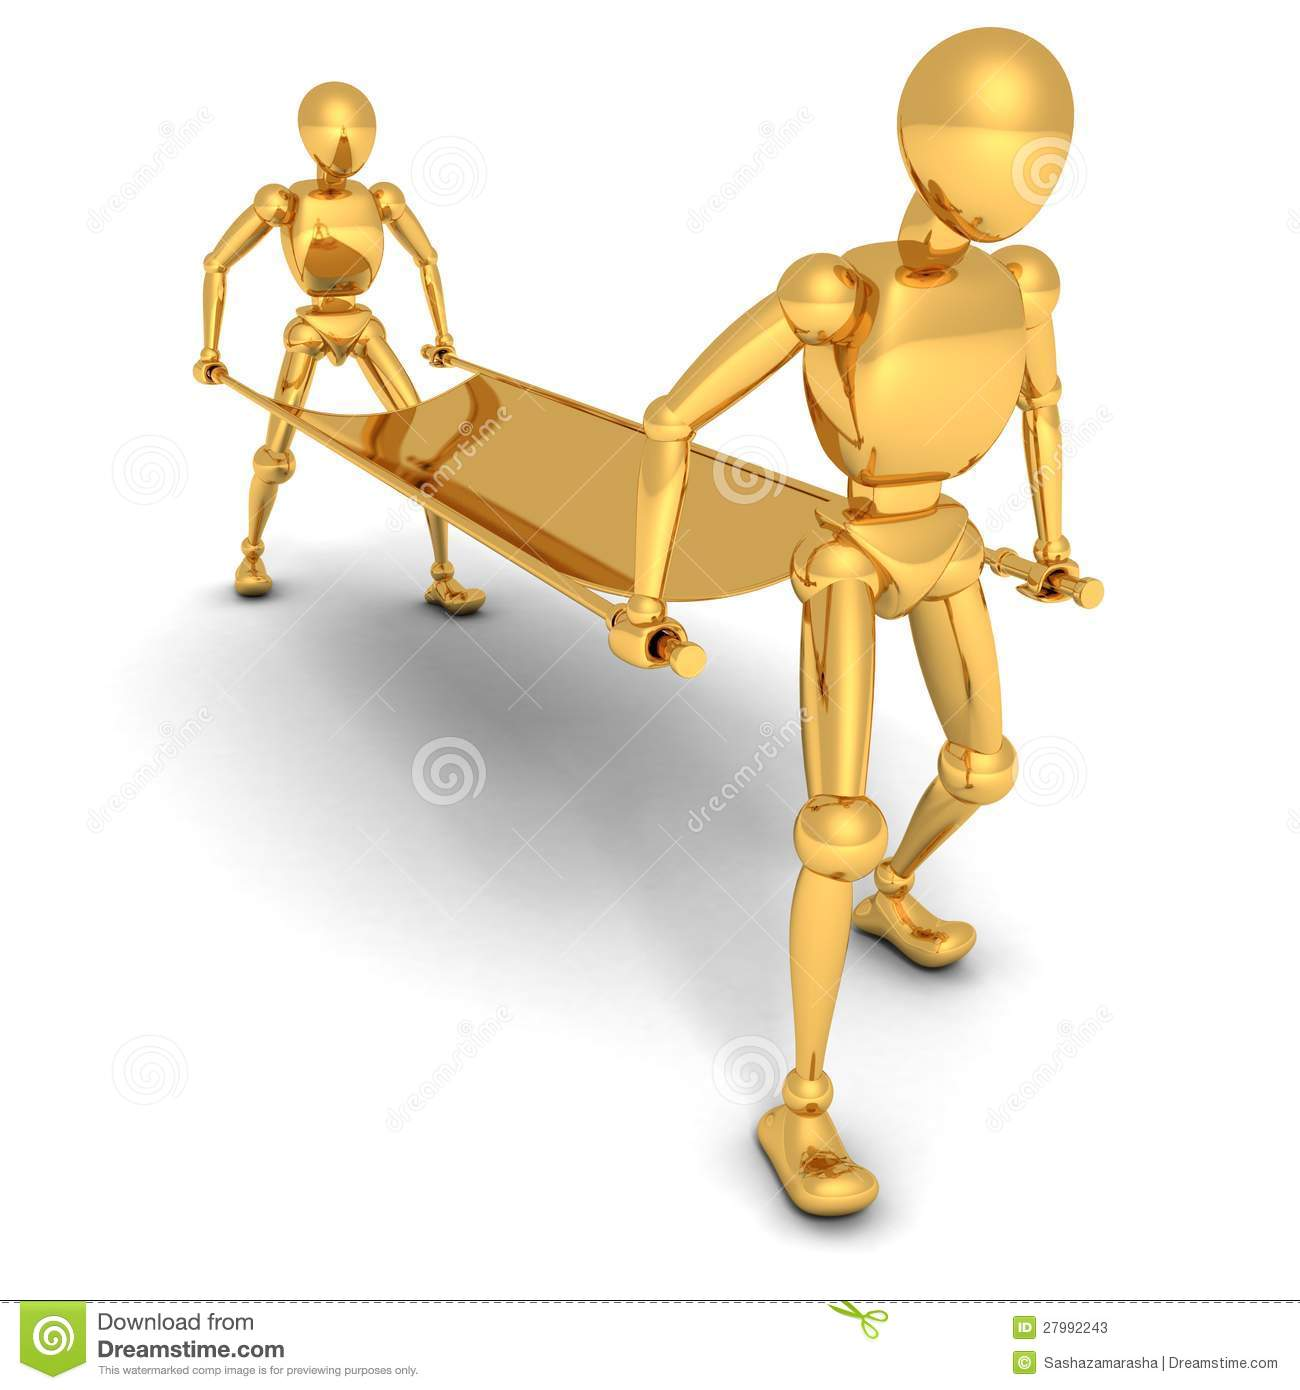 Cartoon golden human characters with stretcher 3d.